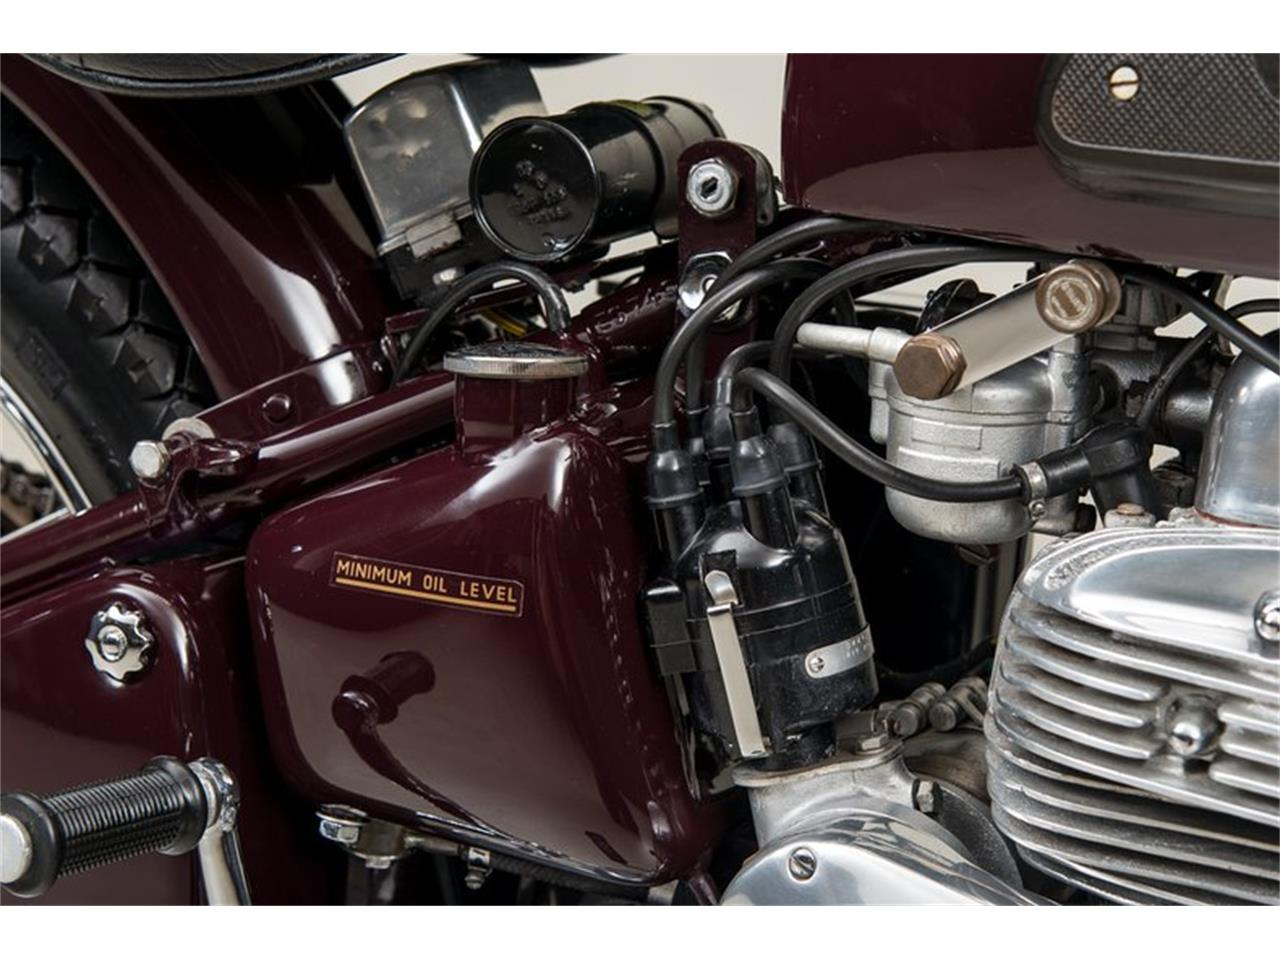 Large Picture of Classic '53 Ariel Square Four located in California Auction Vehicle Offered by Canepa - G3TZ